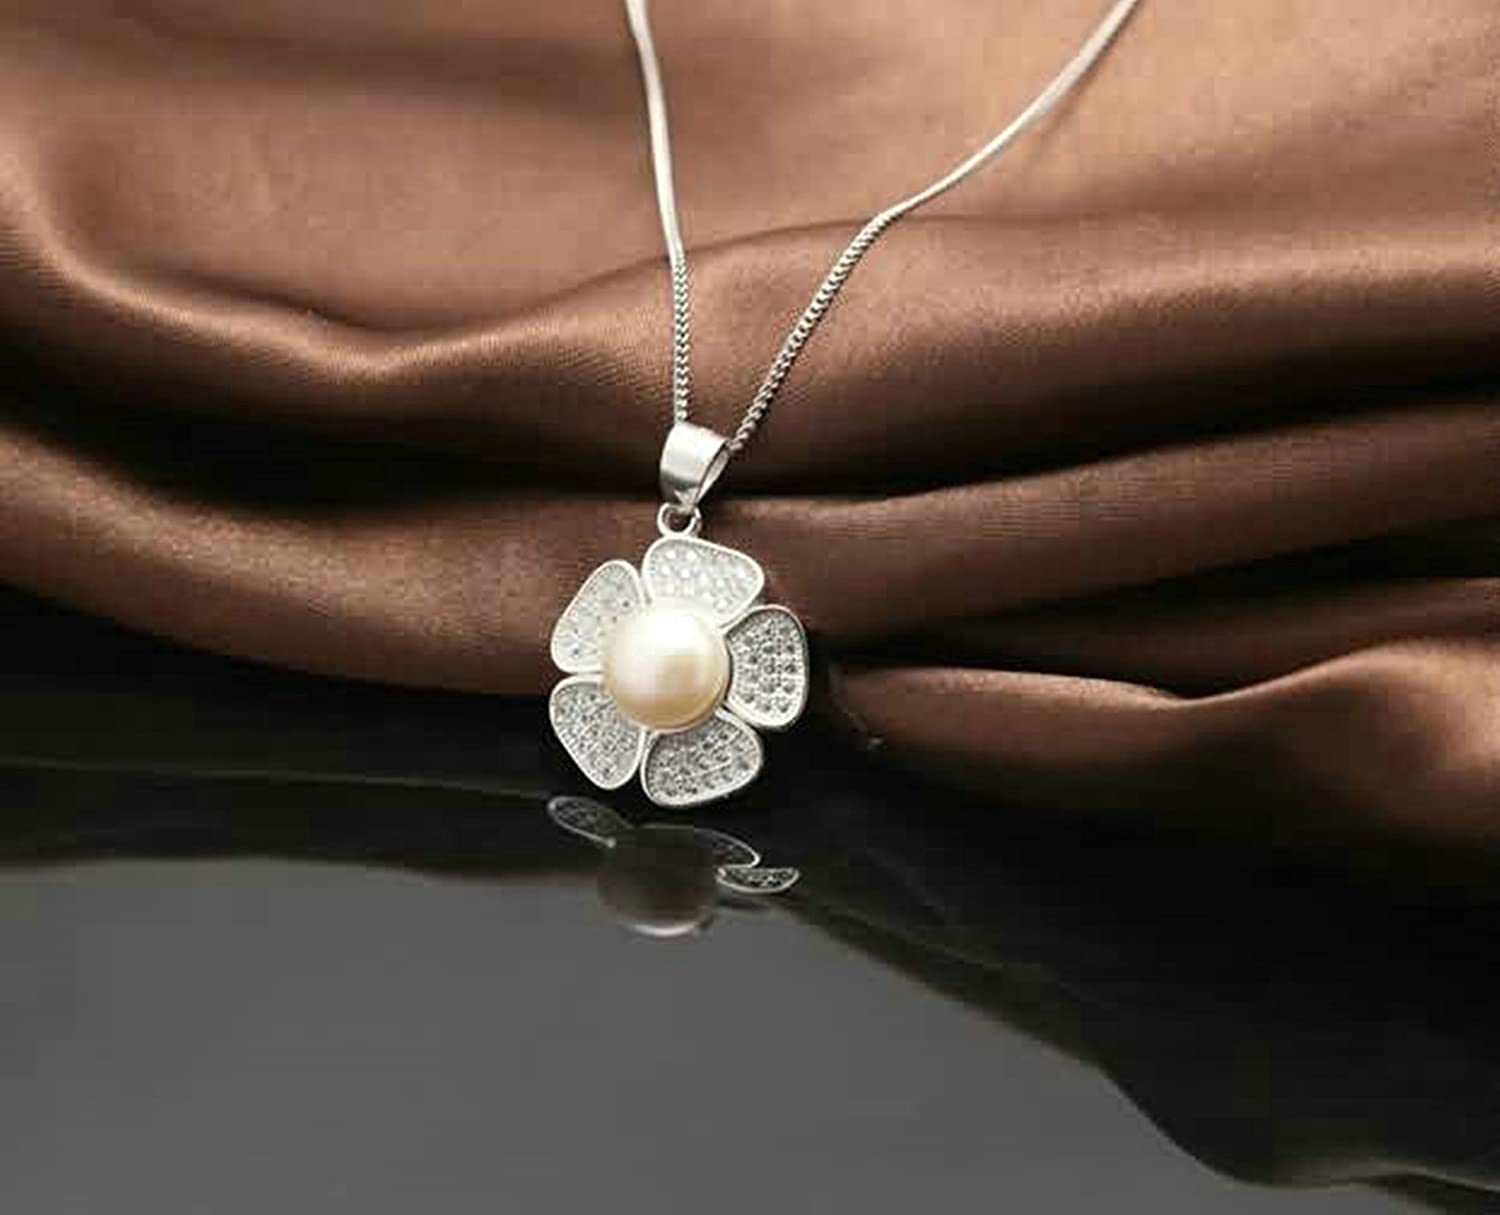 AMDXD Jewelry Sterling Silver Pendant Necklaces for Women Plumeria White 2.5X1.8CM